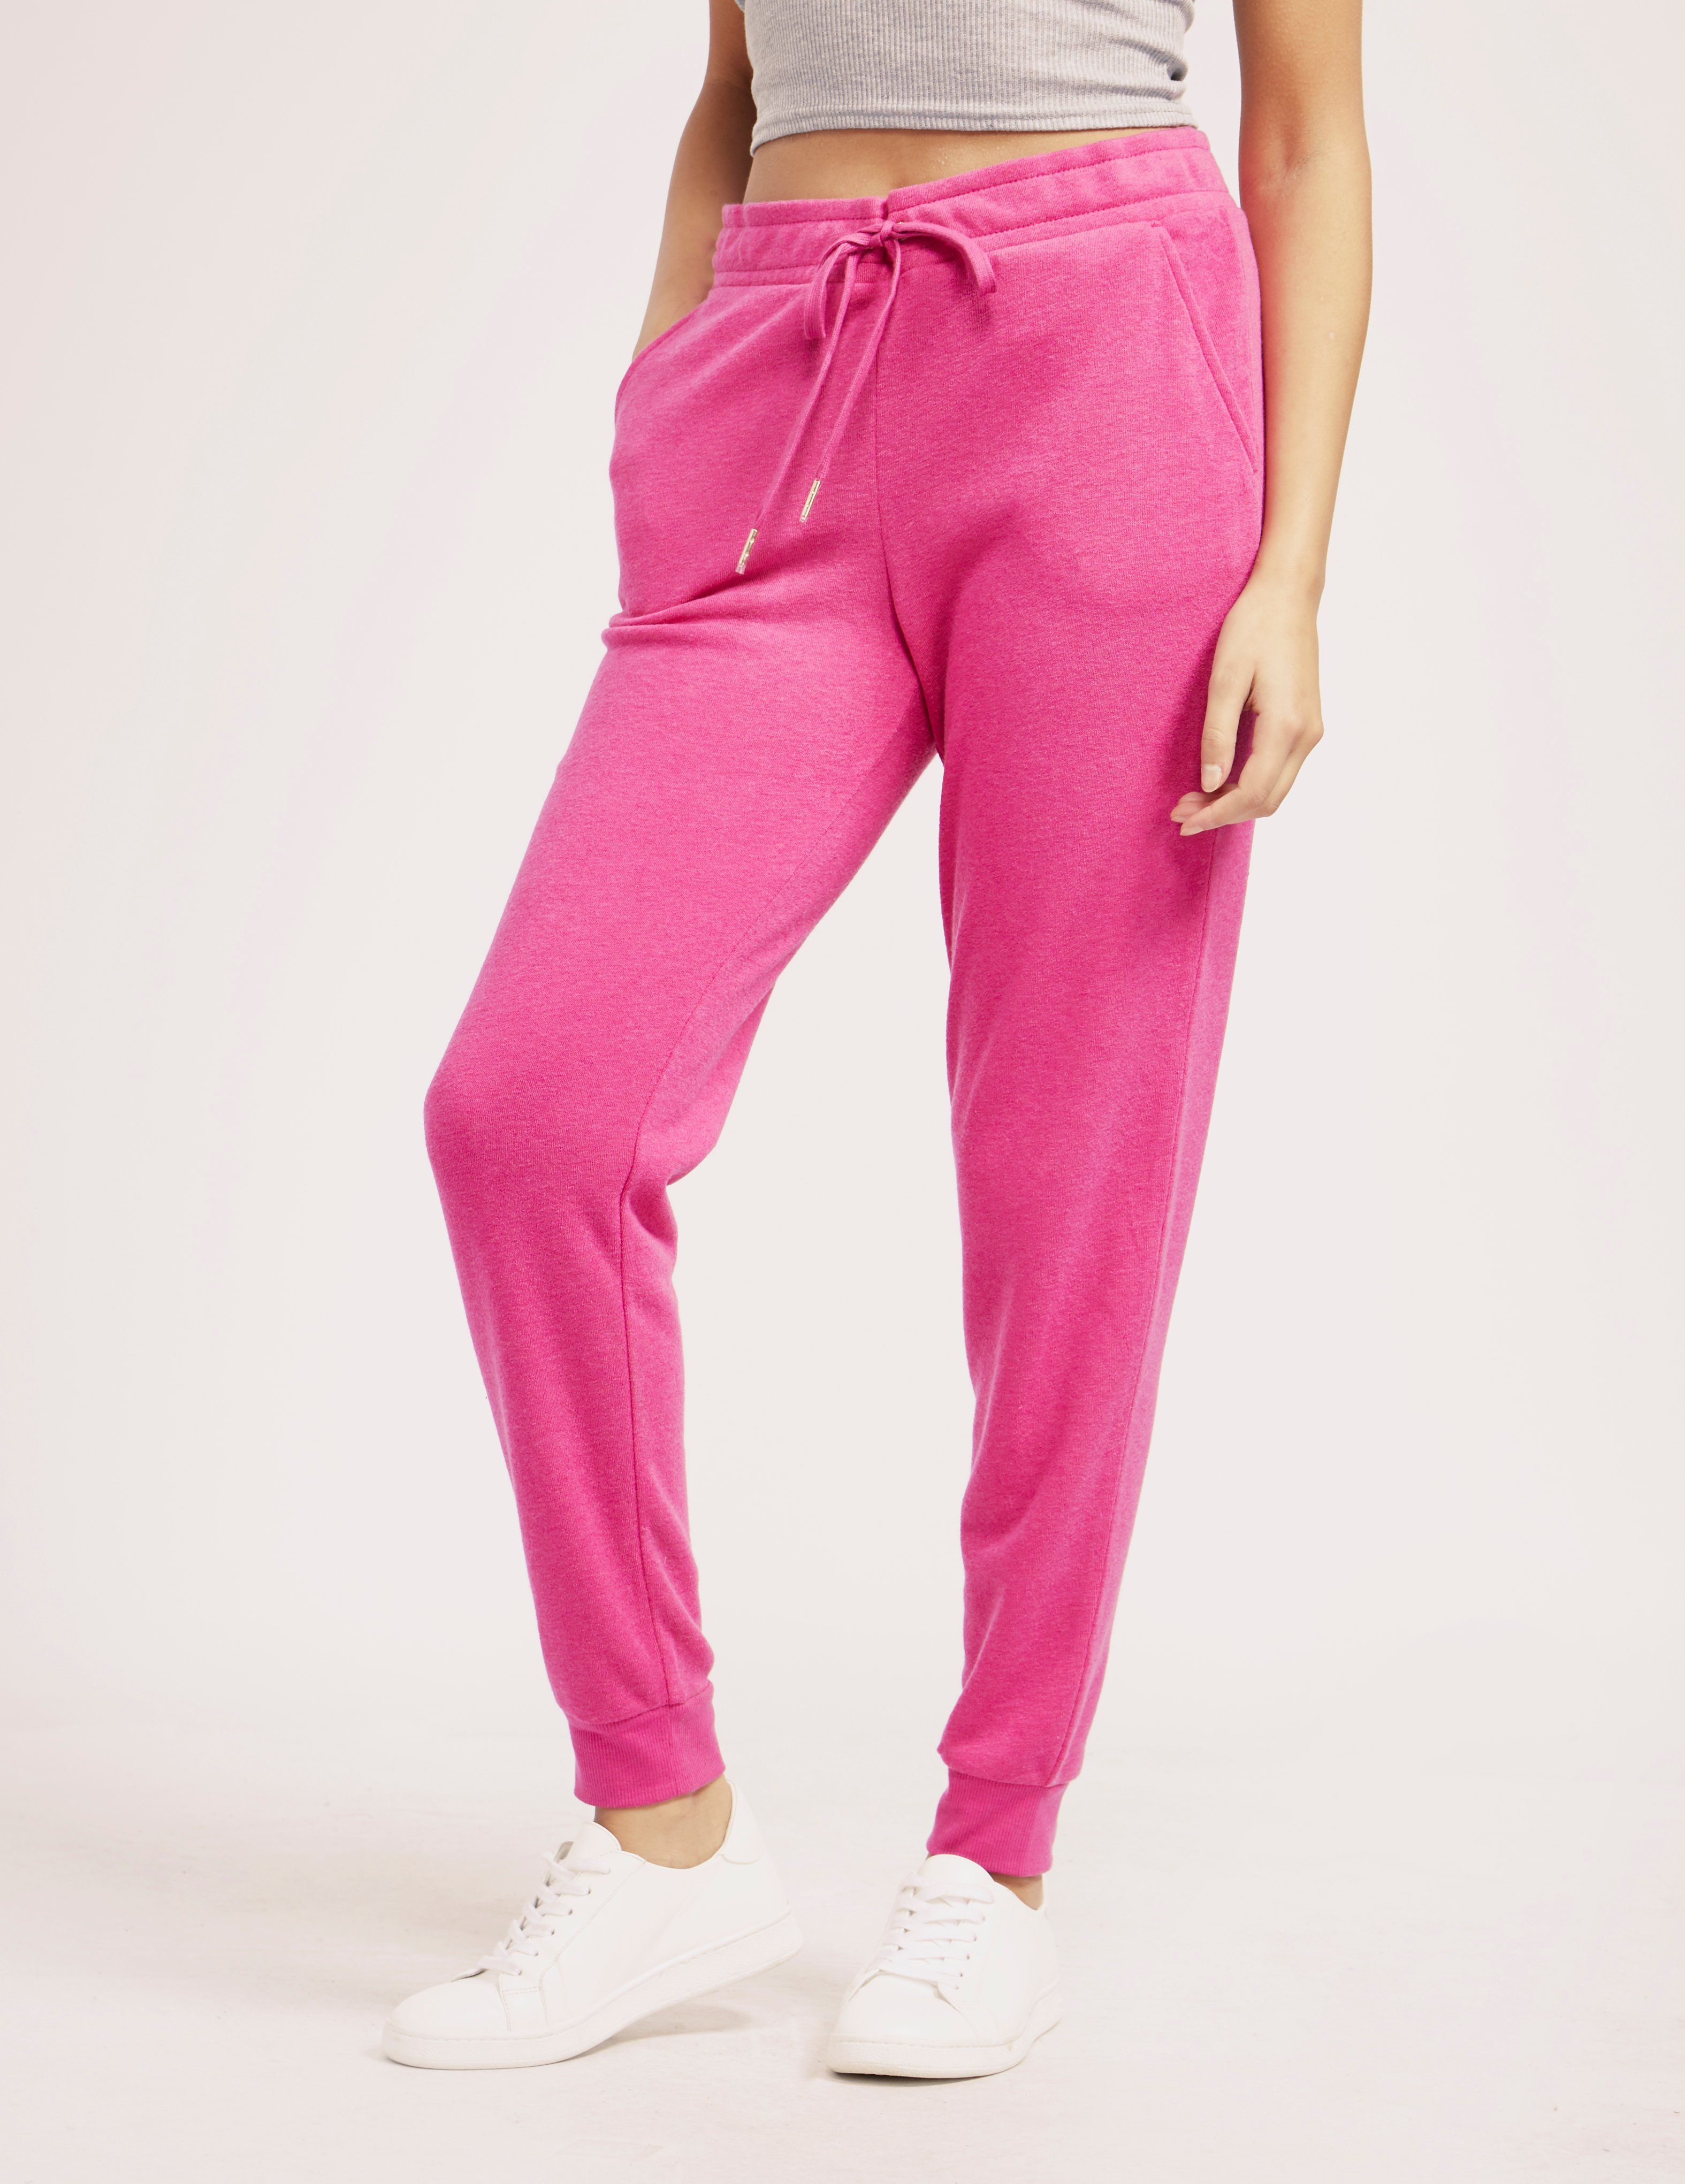 Juicy Couture Relax Lounge Pant